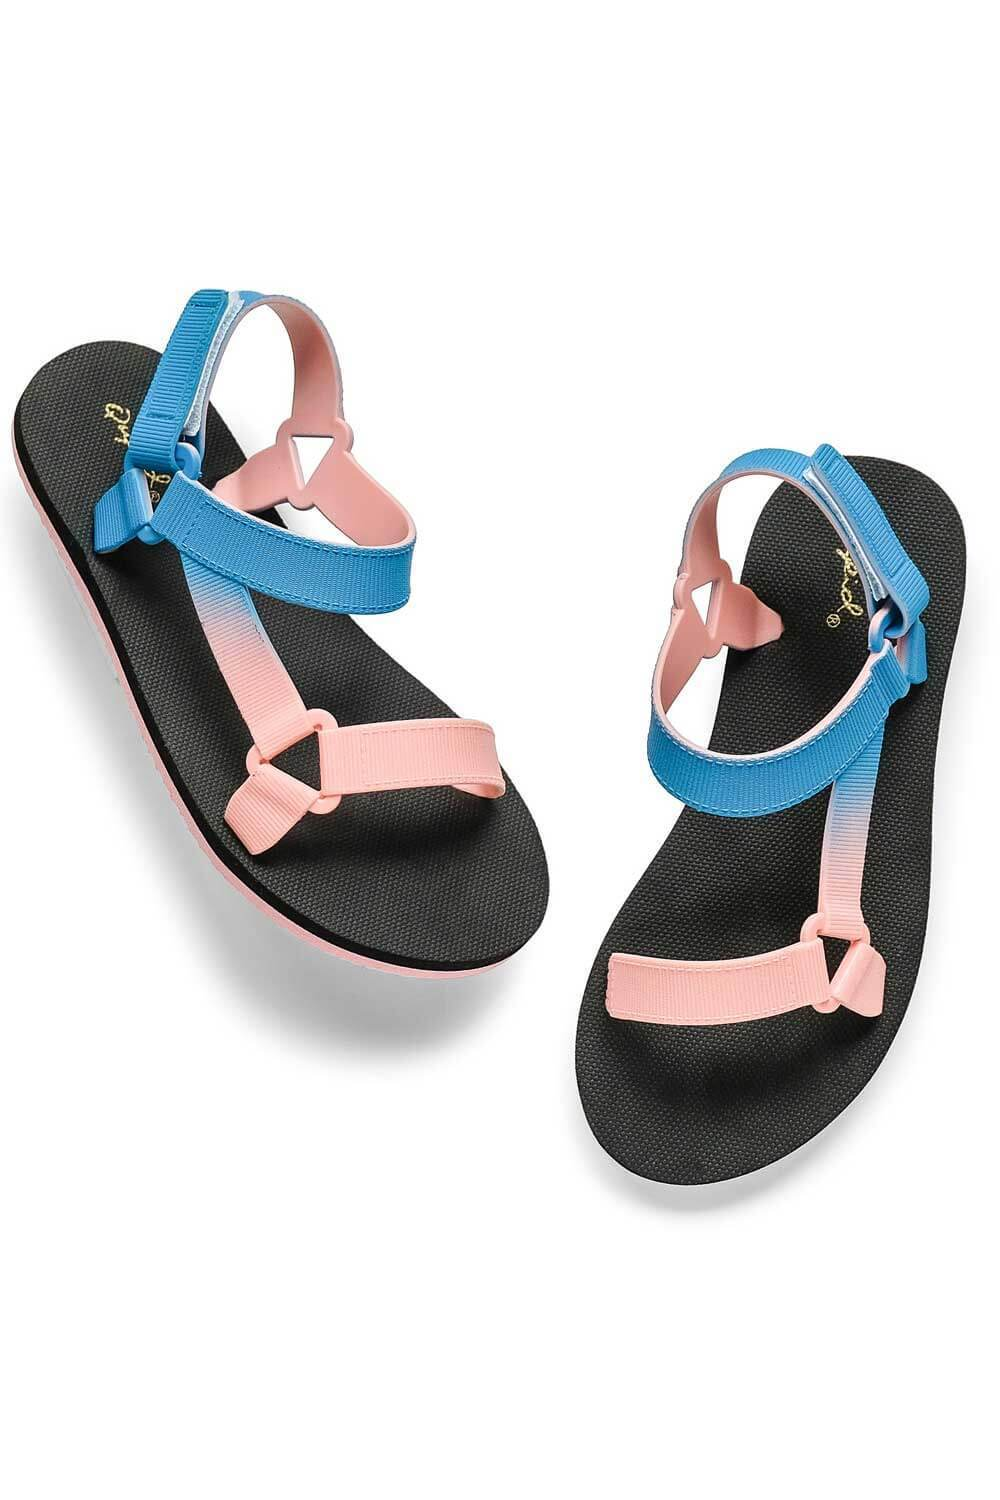 Icela Sandals Blue Pink - MILK MONEY